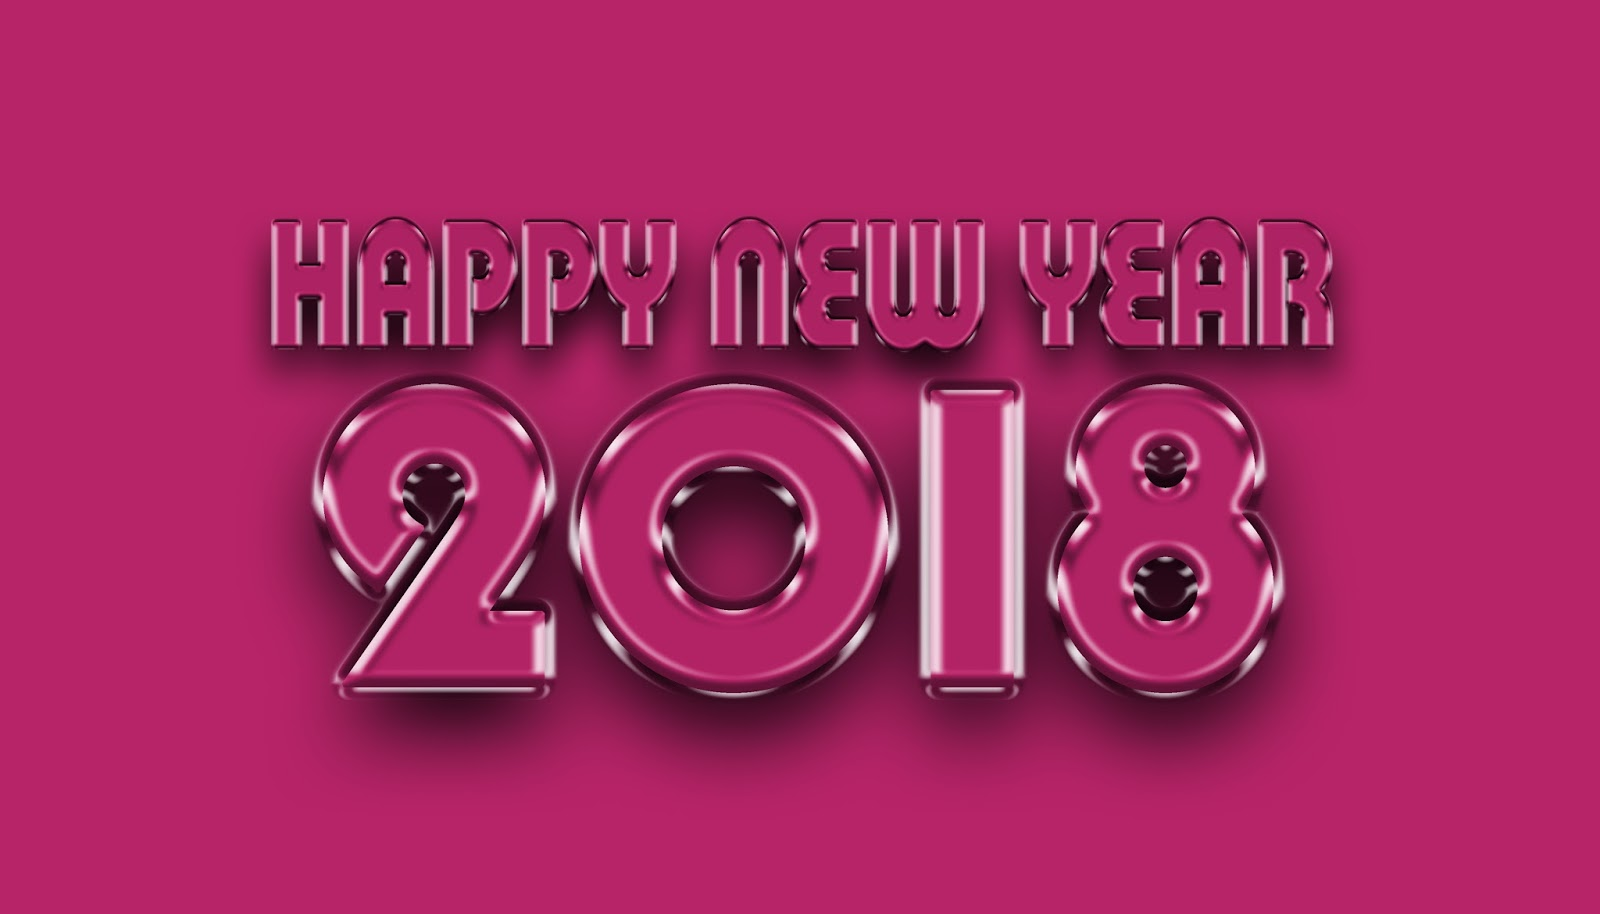 30 Happy New Year Hd Wallpapers To Beautify Your Desktop